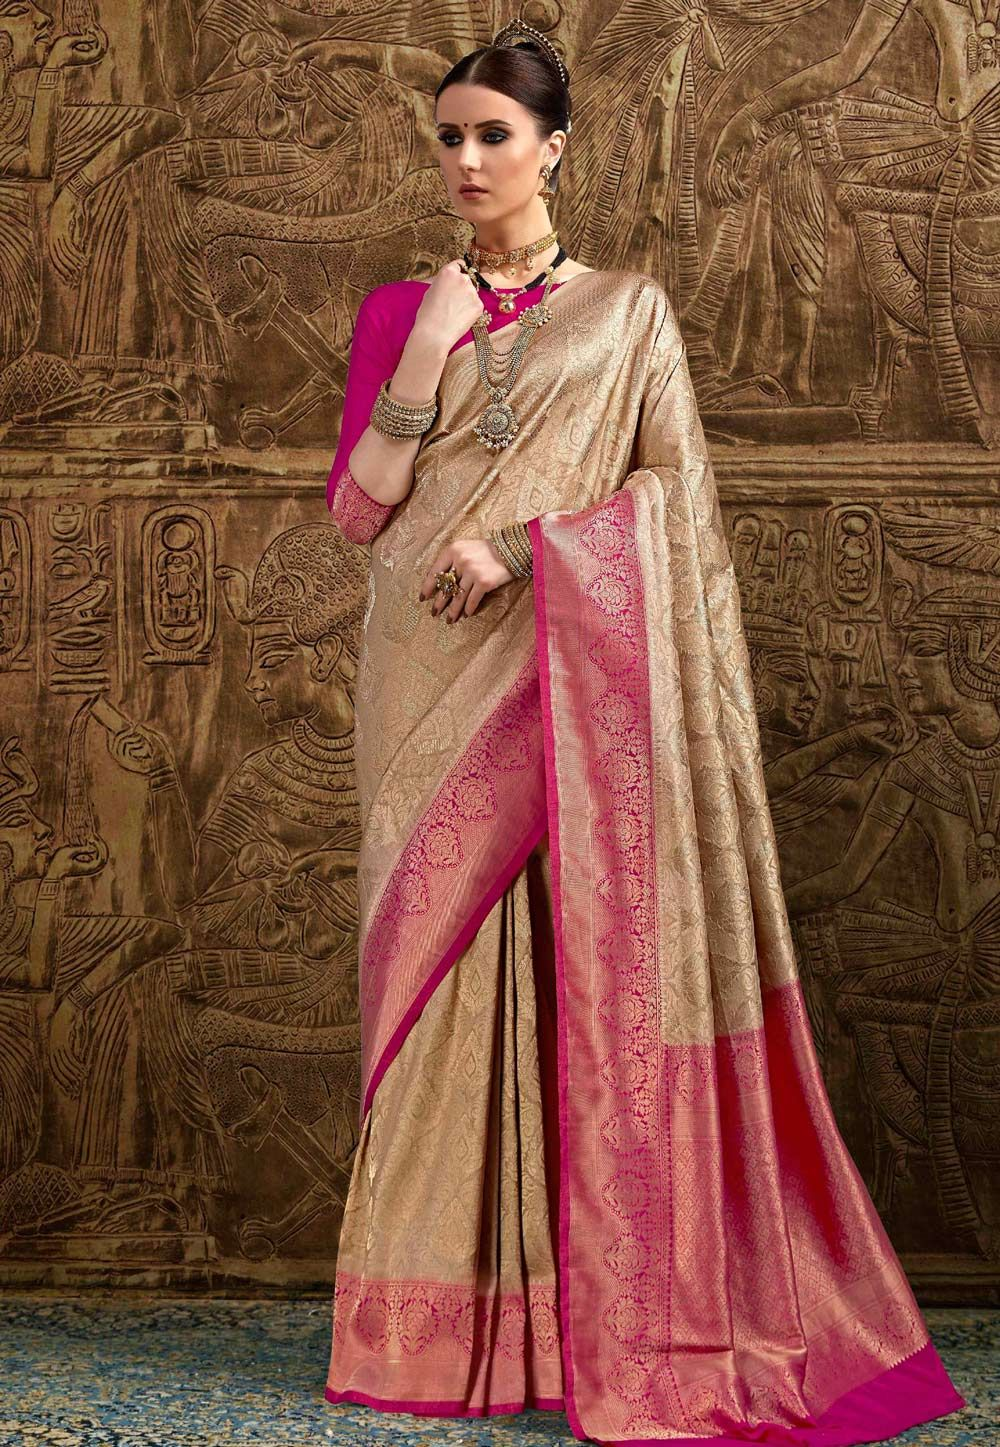 c830ce8600 Buy Beige Brocade Saree With Blouse 155862 with blouse online at lowest  price from vast collection of sarees at Indianclothstore.com.